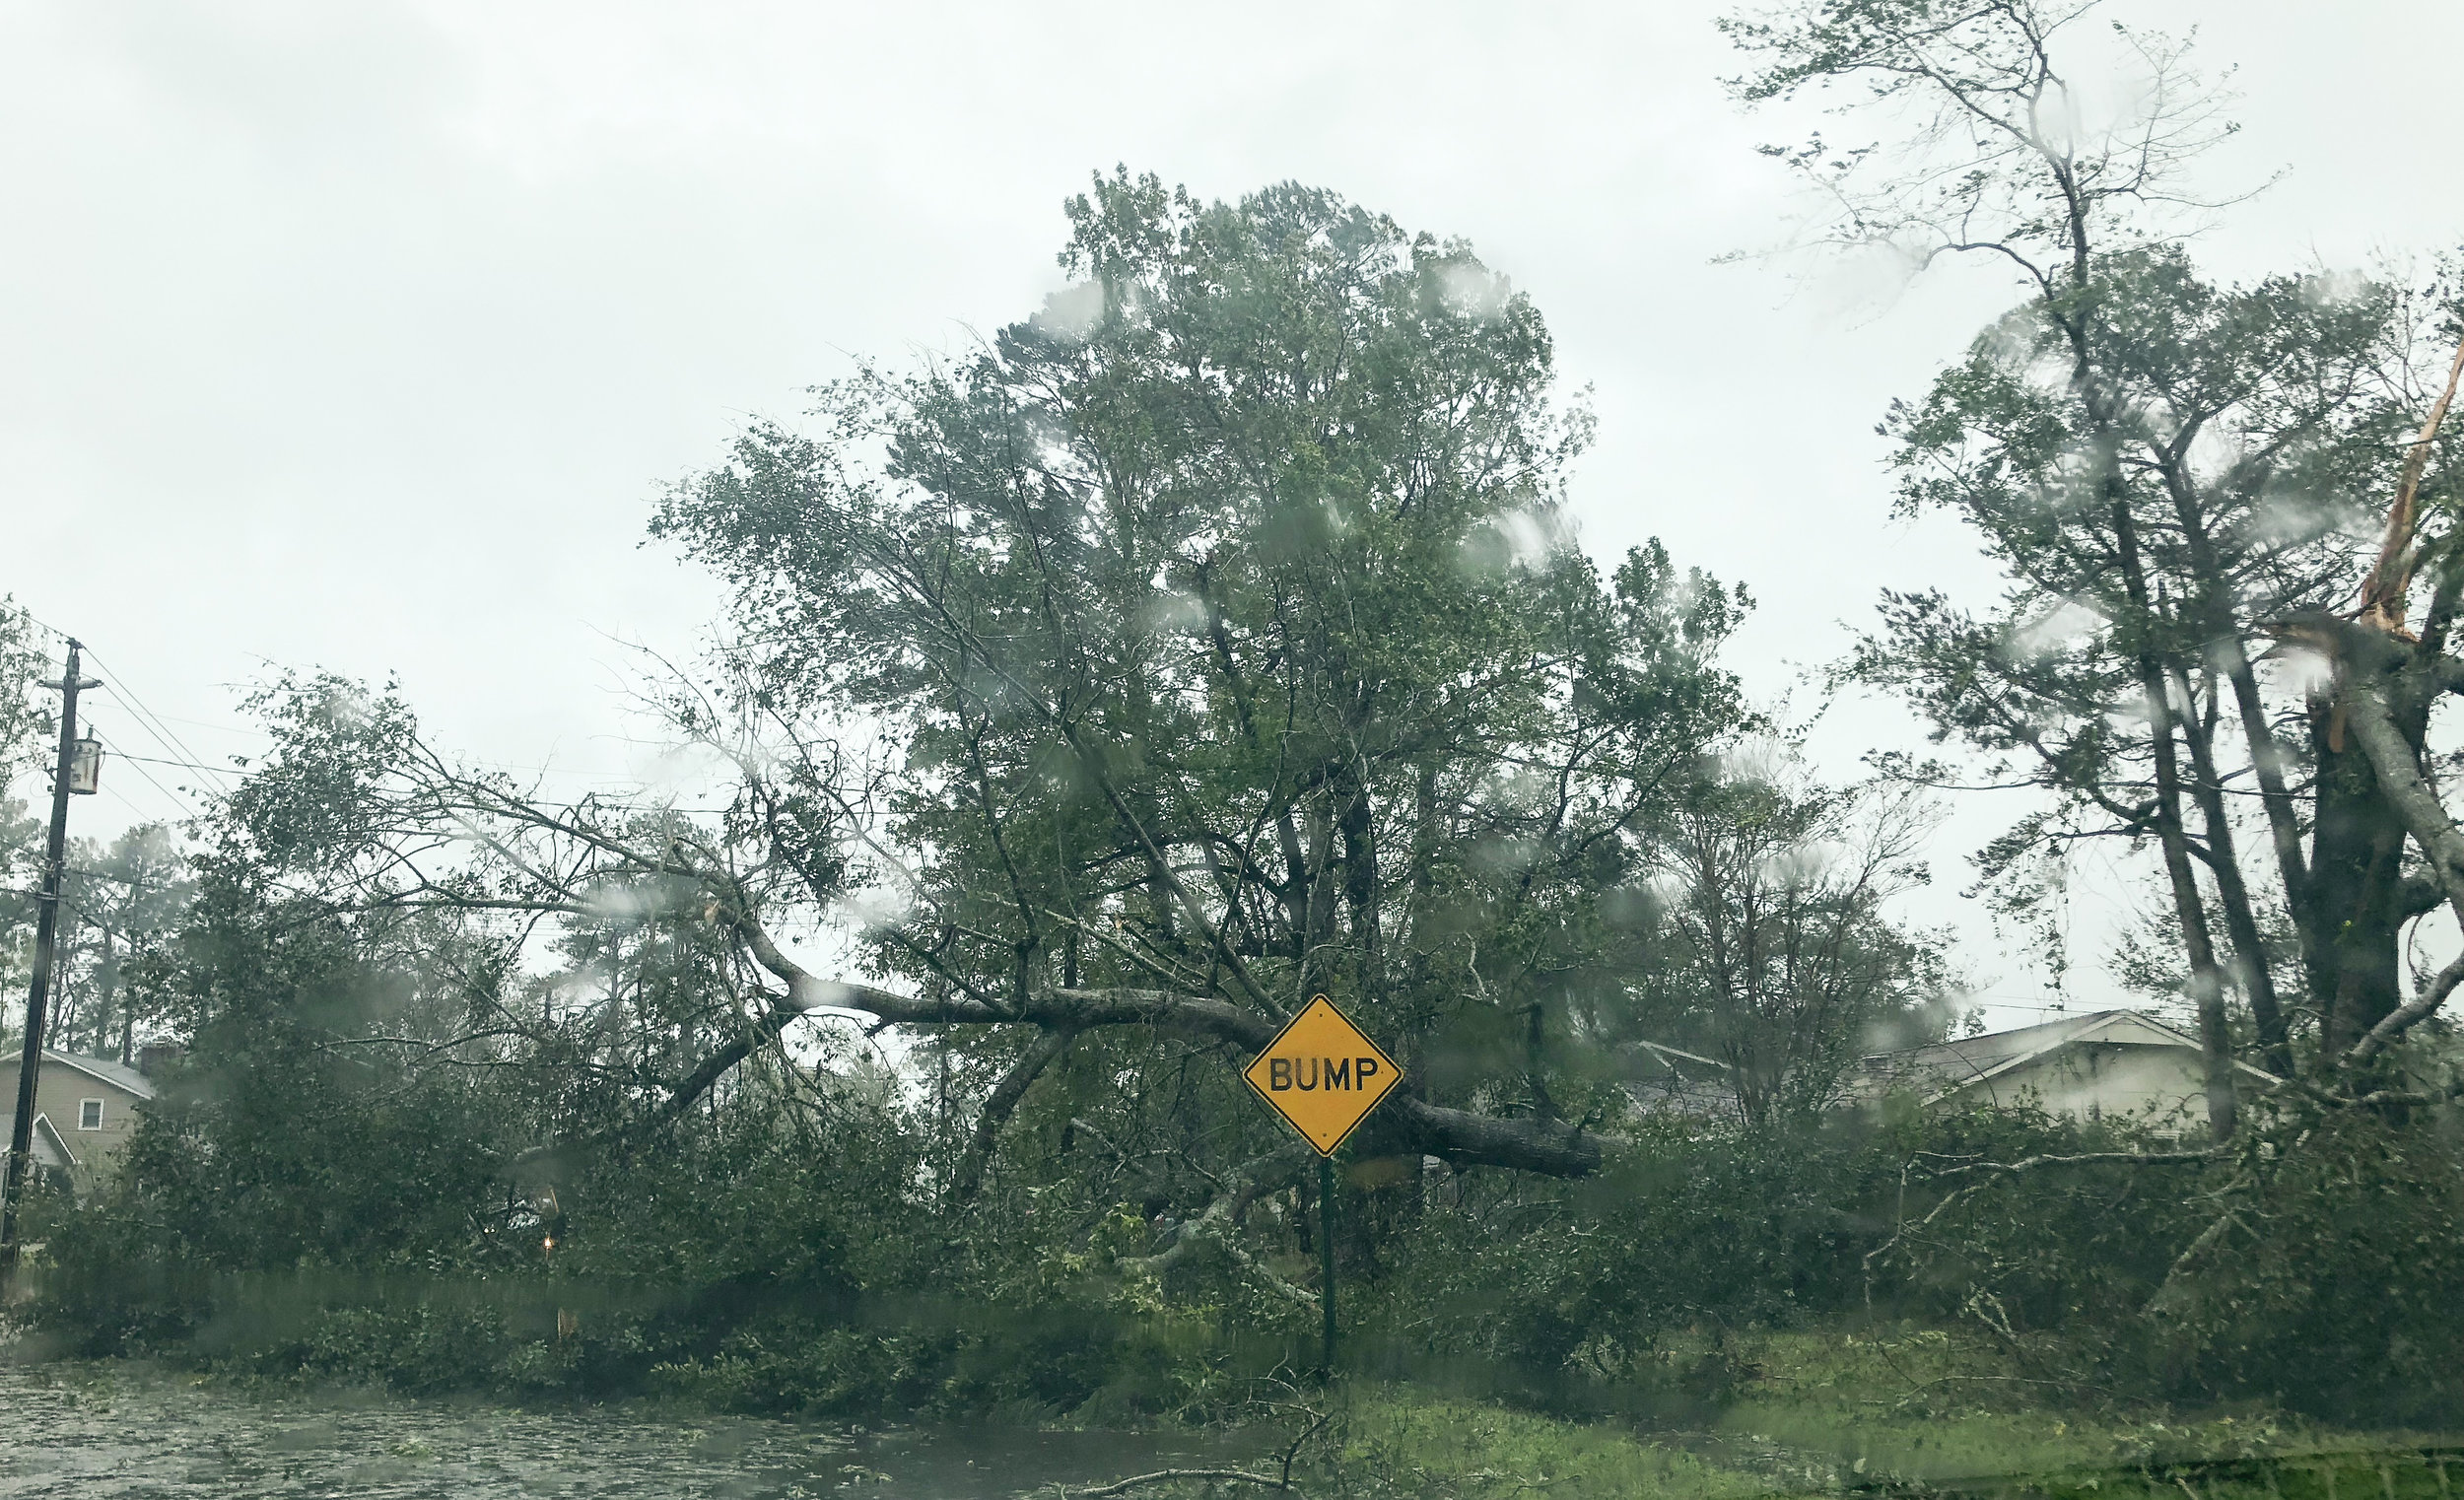 Hundred year old trees toppled over with the effects of Hurricane Florence.